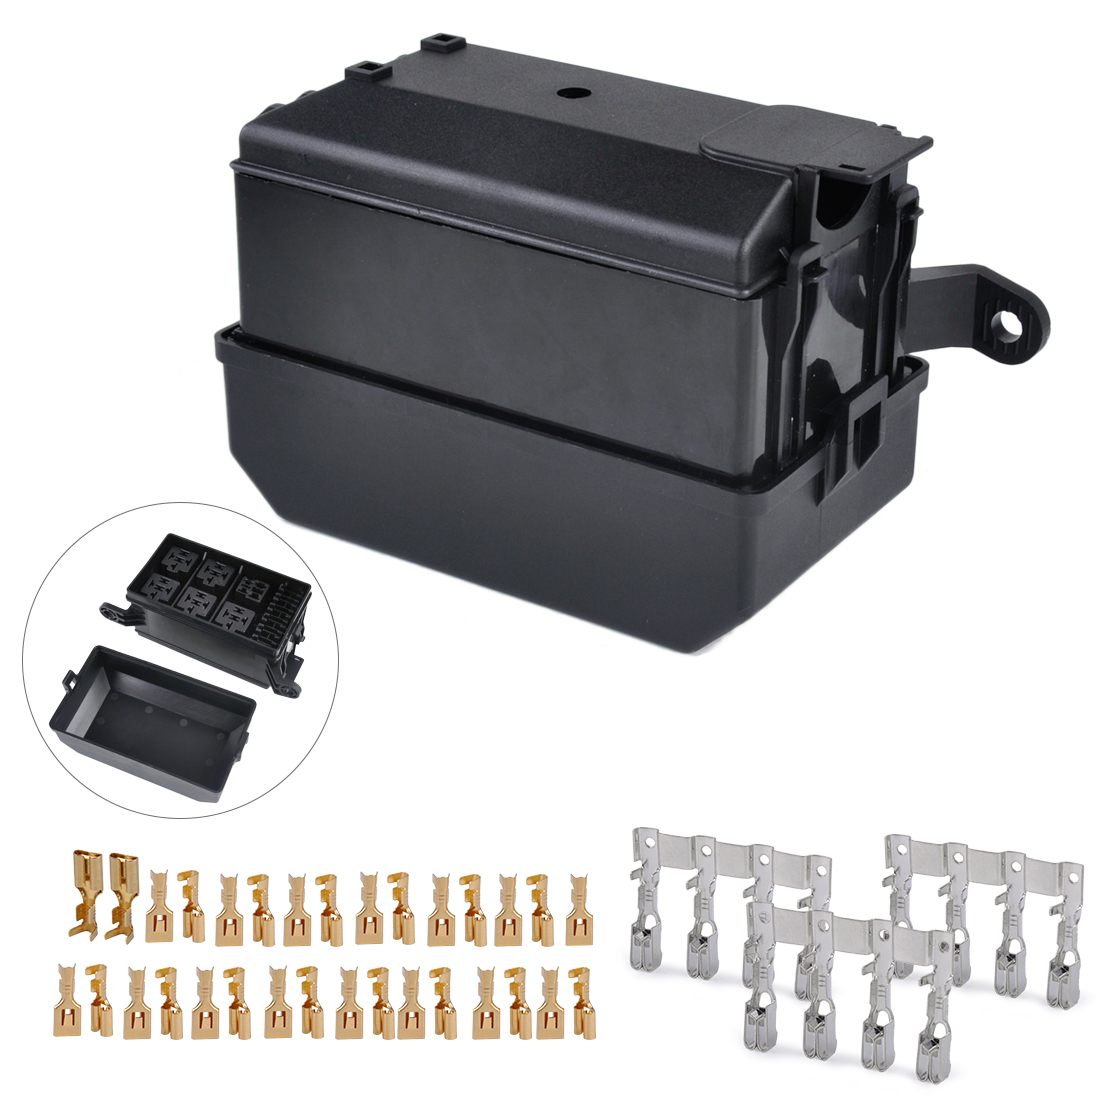 Citall Car Auto Fuse Relay Holder Box 6 Socket 5 Road The Nacelle 04 Kia Rio Vehicle Insurance For Ford